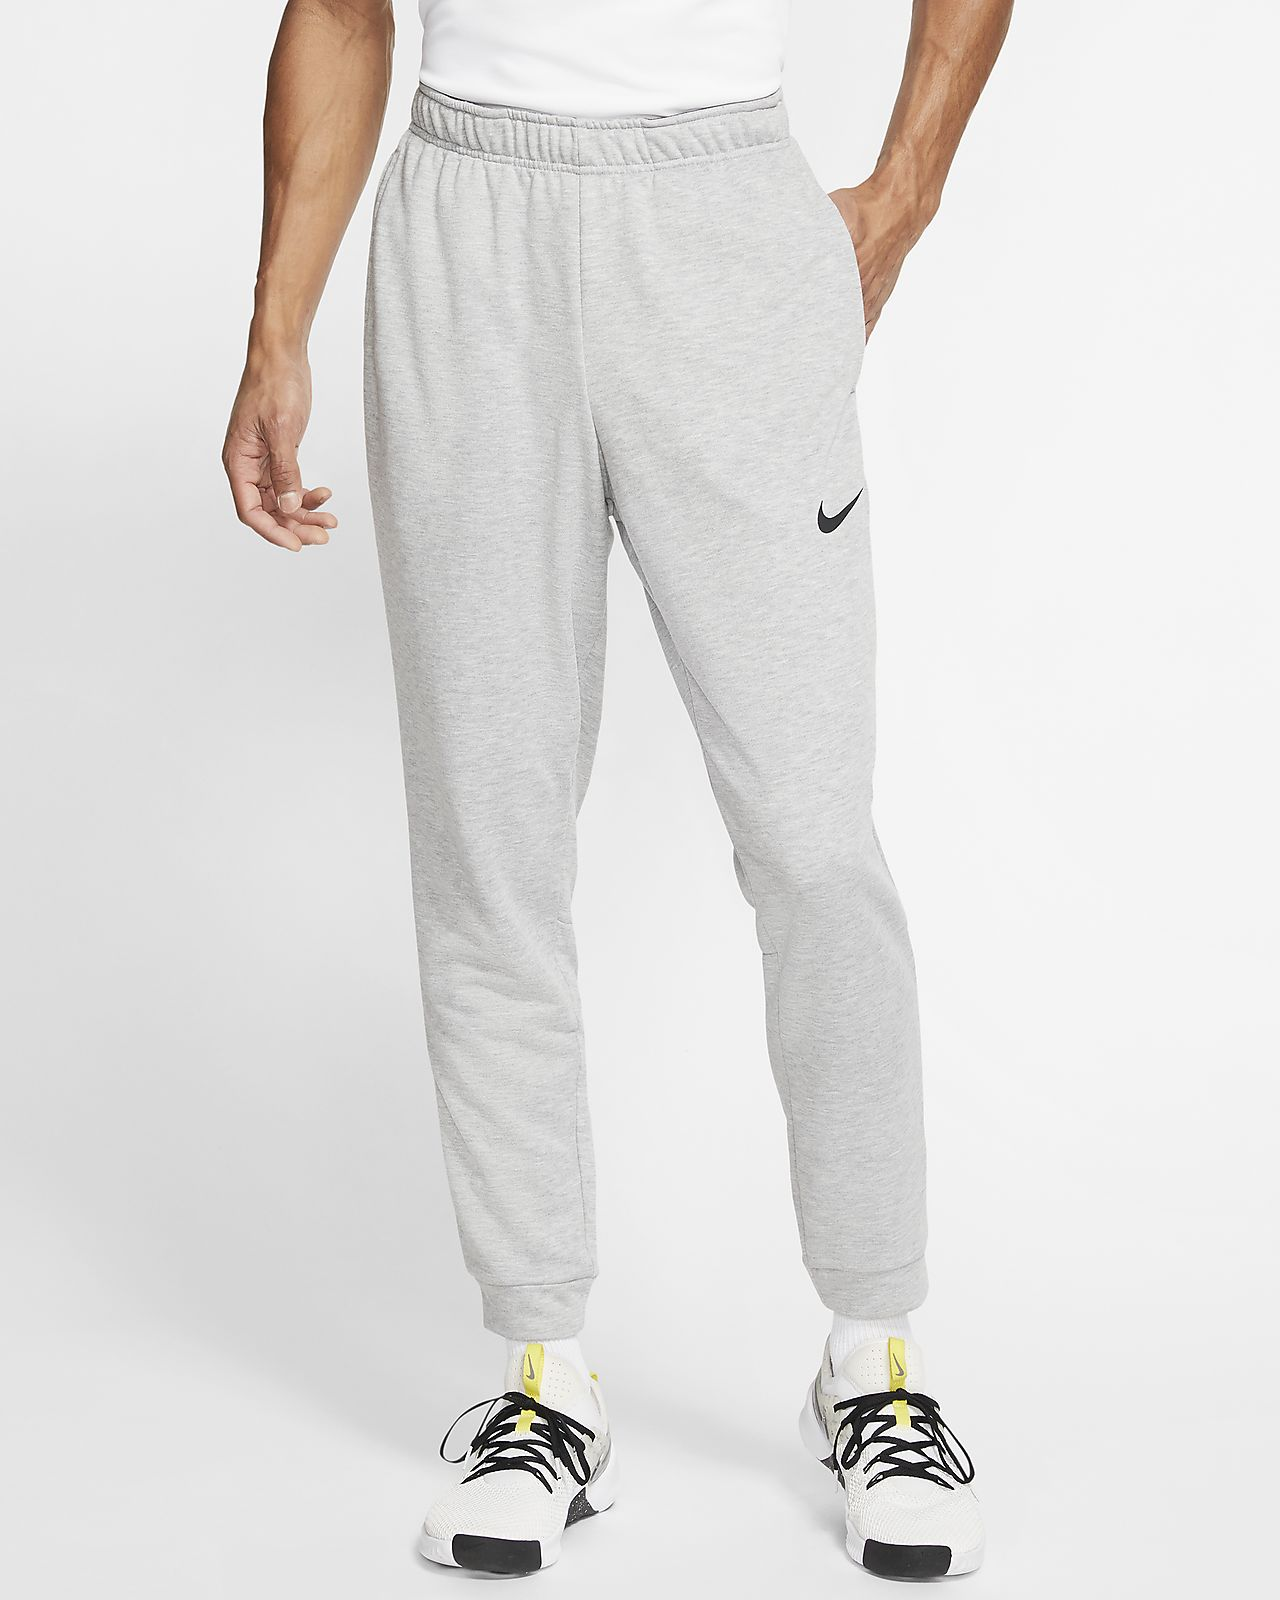 Pantaloni da training in fleece Nike Dri-FIT - Uomo